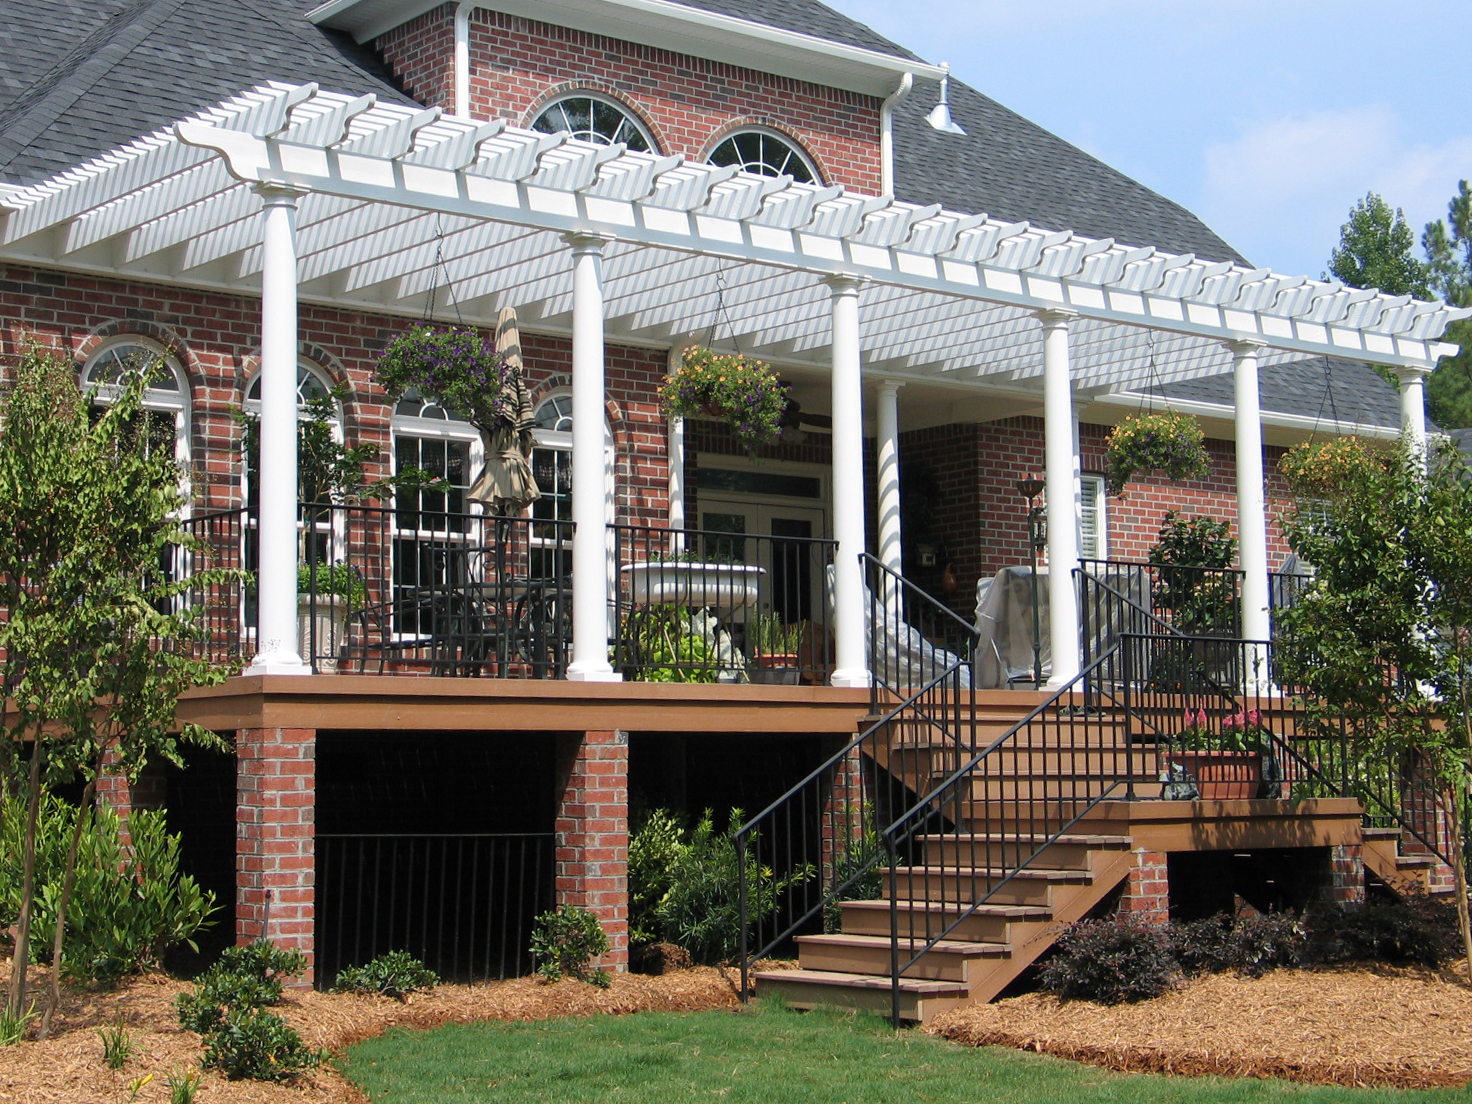 Pergola Design Ideas for Every Outdoor Space by Archadeck ... on Deck Over Patio Ideas id=81086